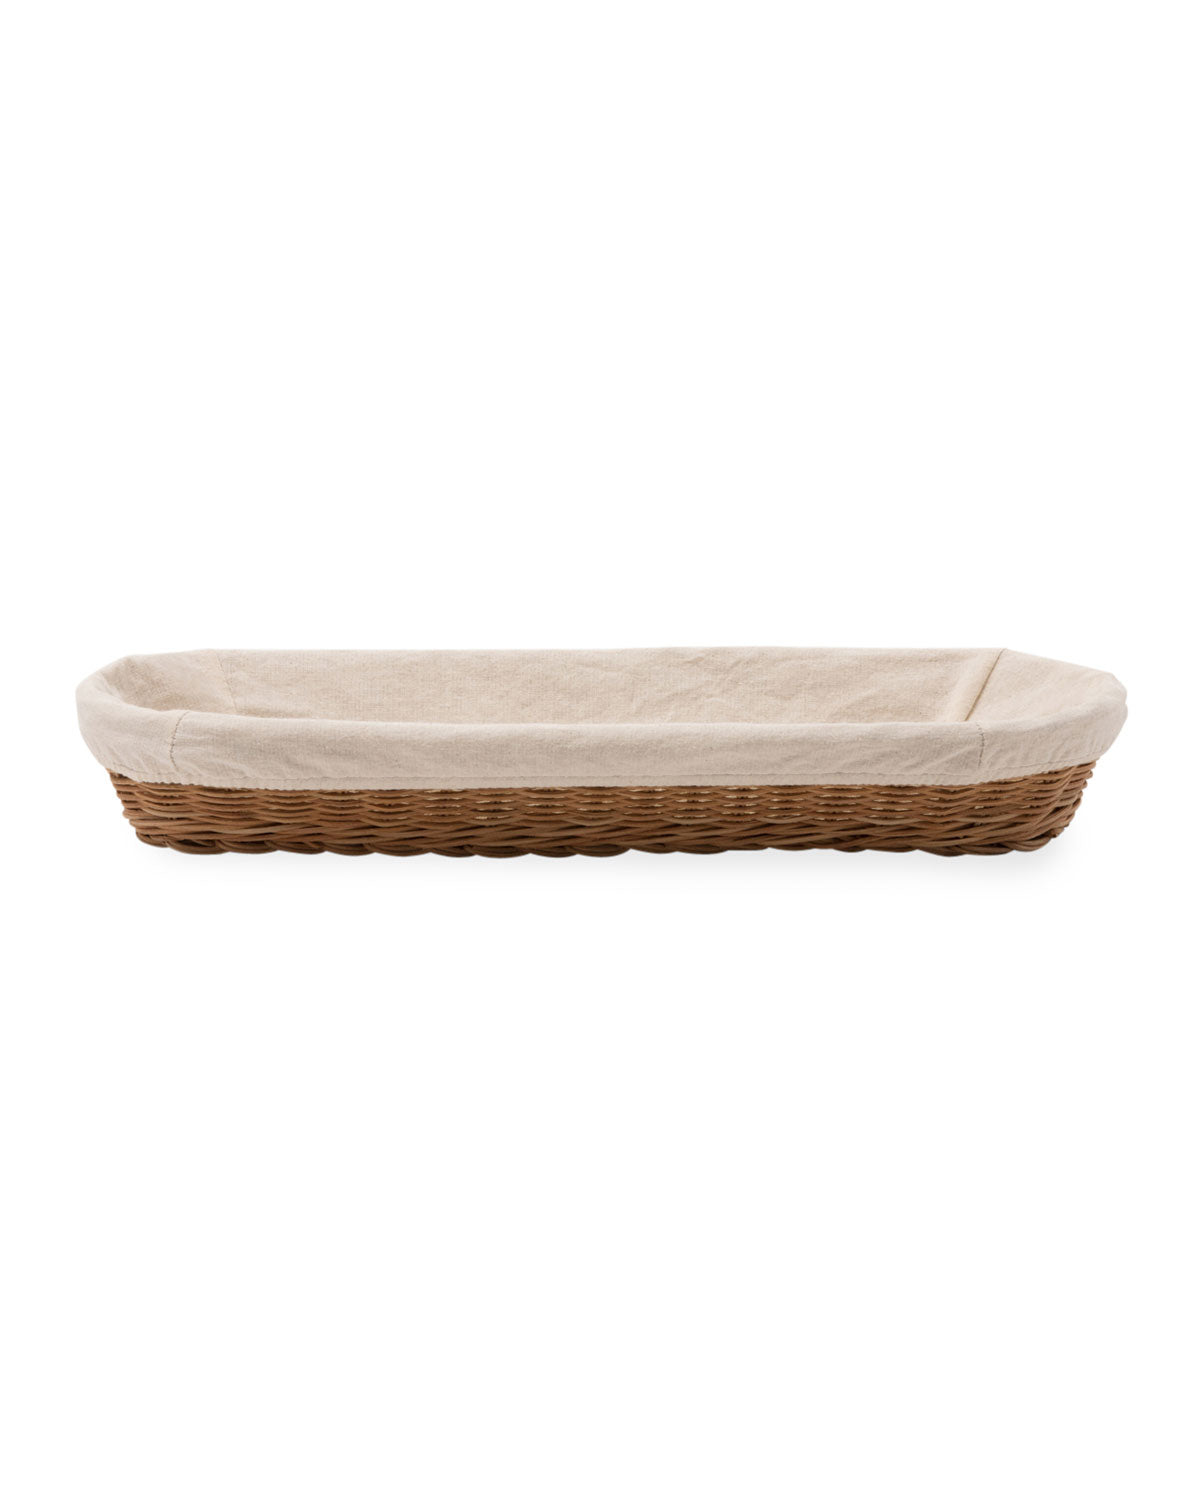 Lined Rattan Trays - Amy Berry Home